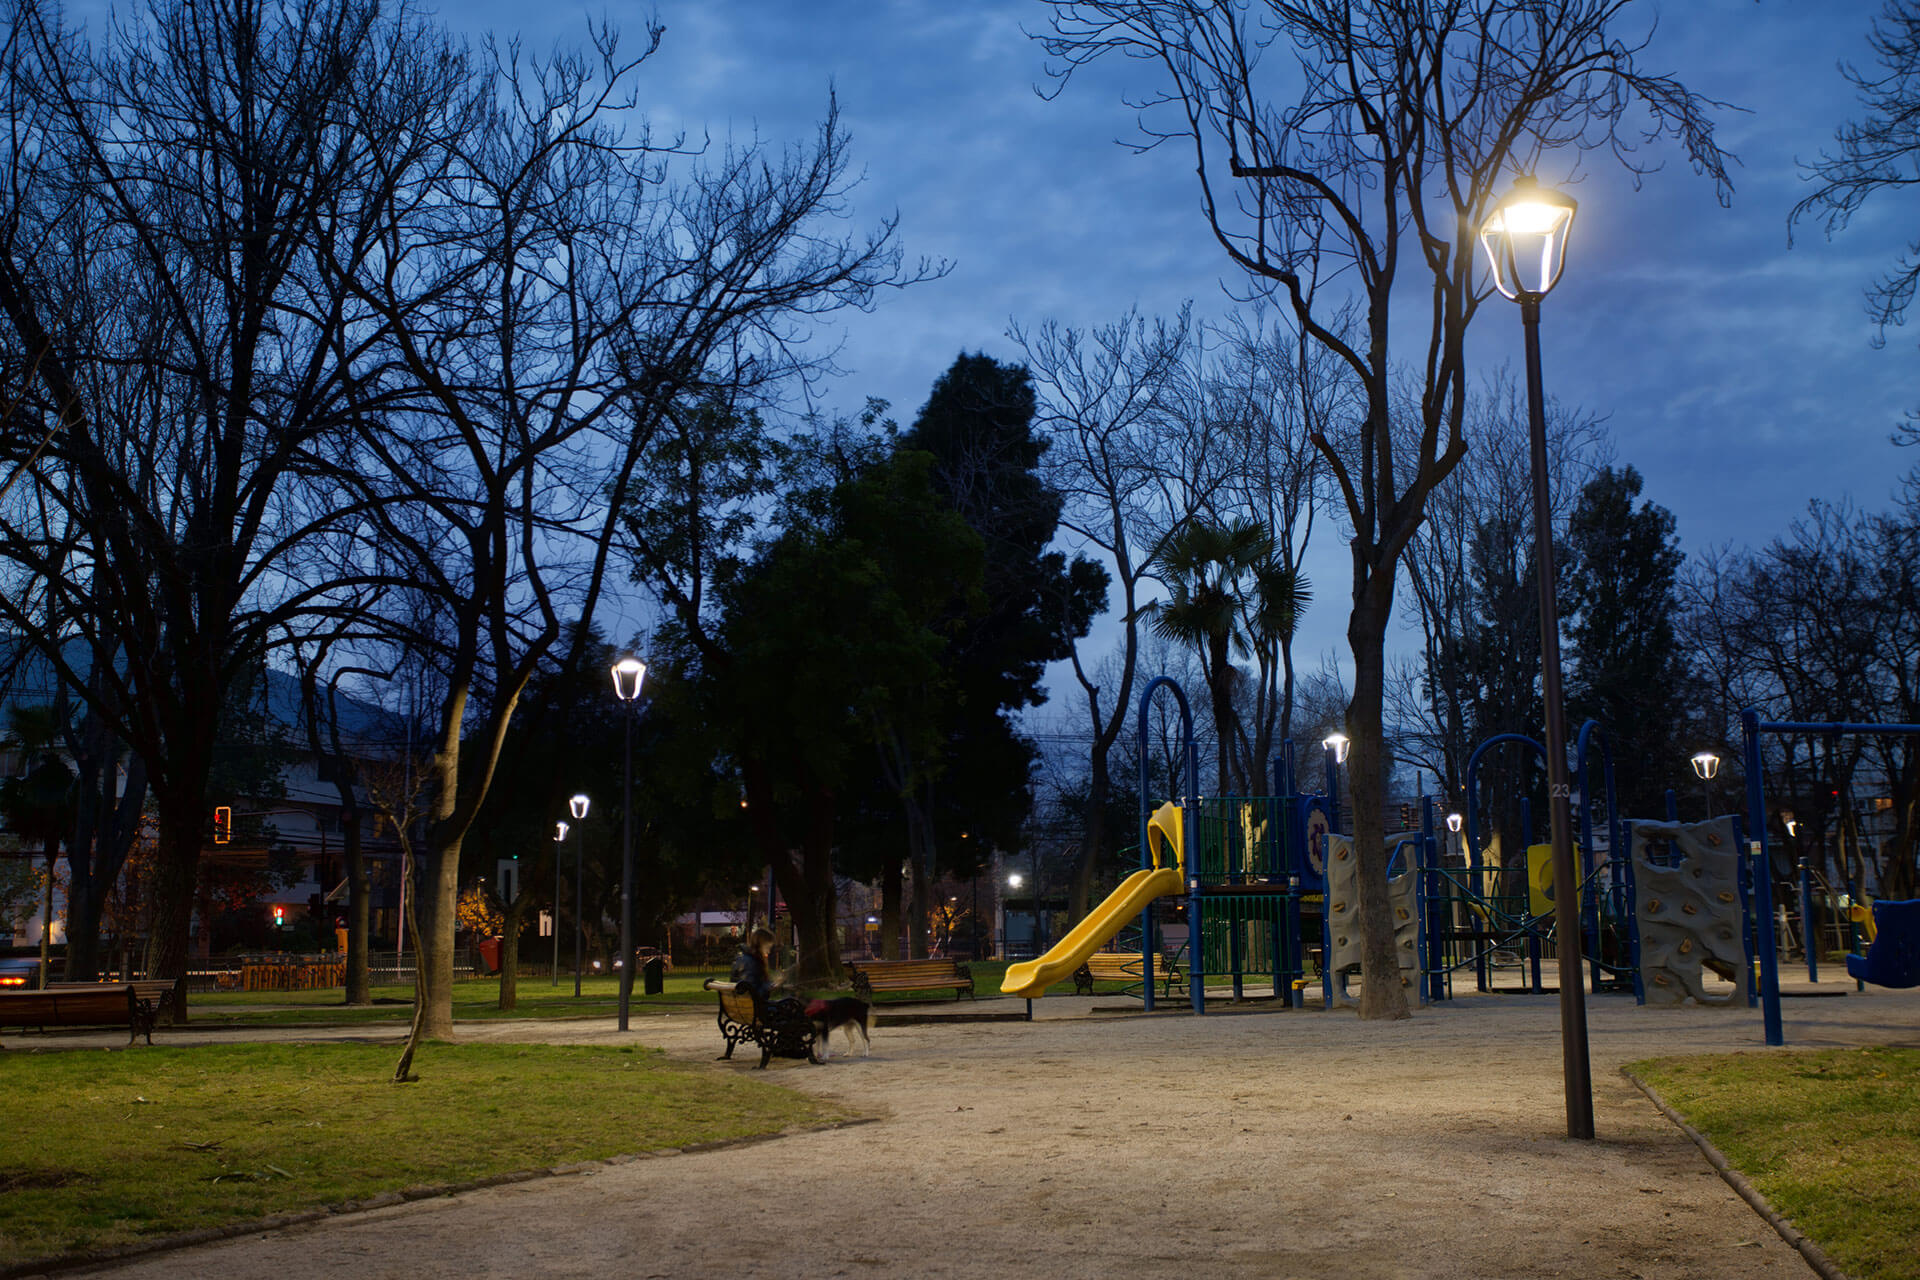 Stylage LED luminaires have improved visibility in the parks of Vitacura so that residents feel much safer and more at ease at night